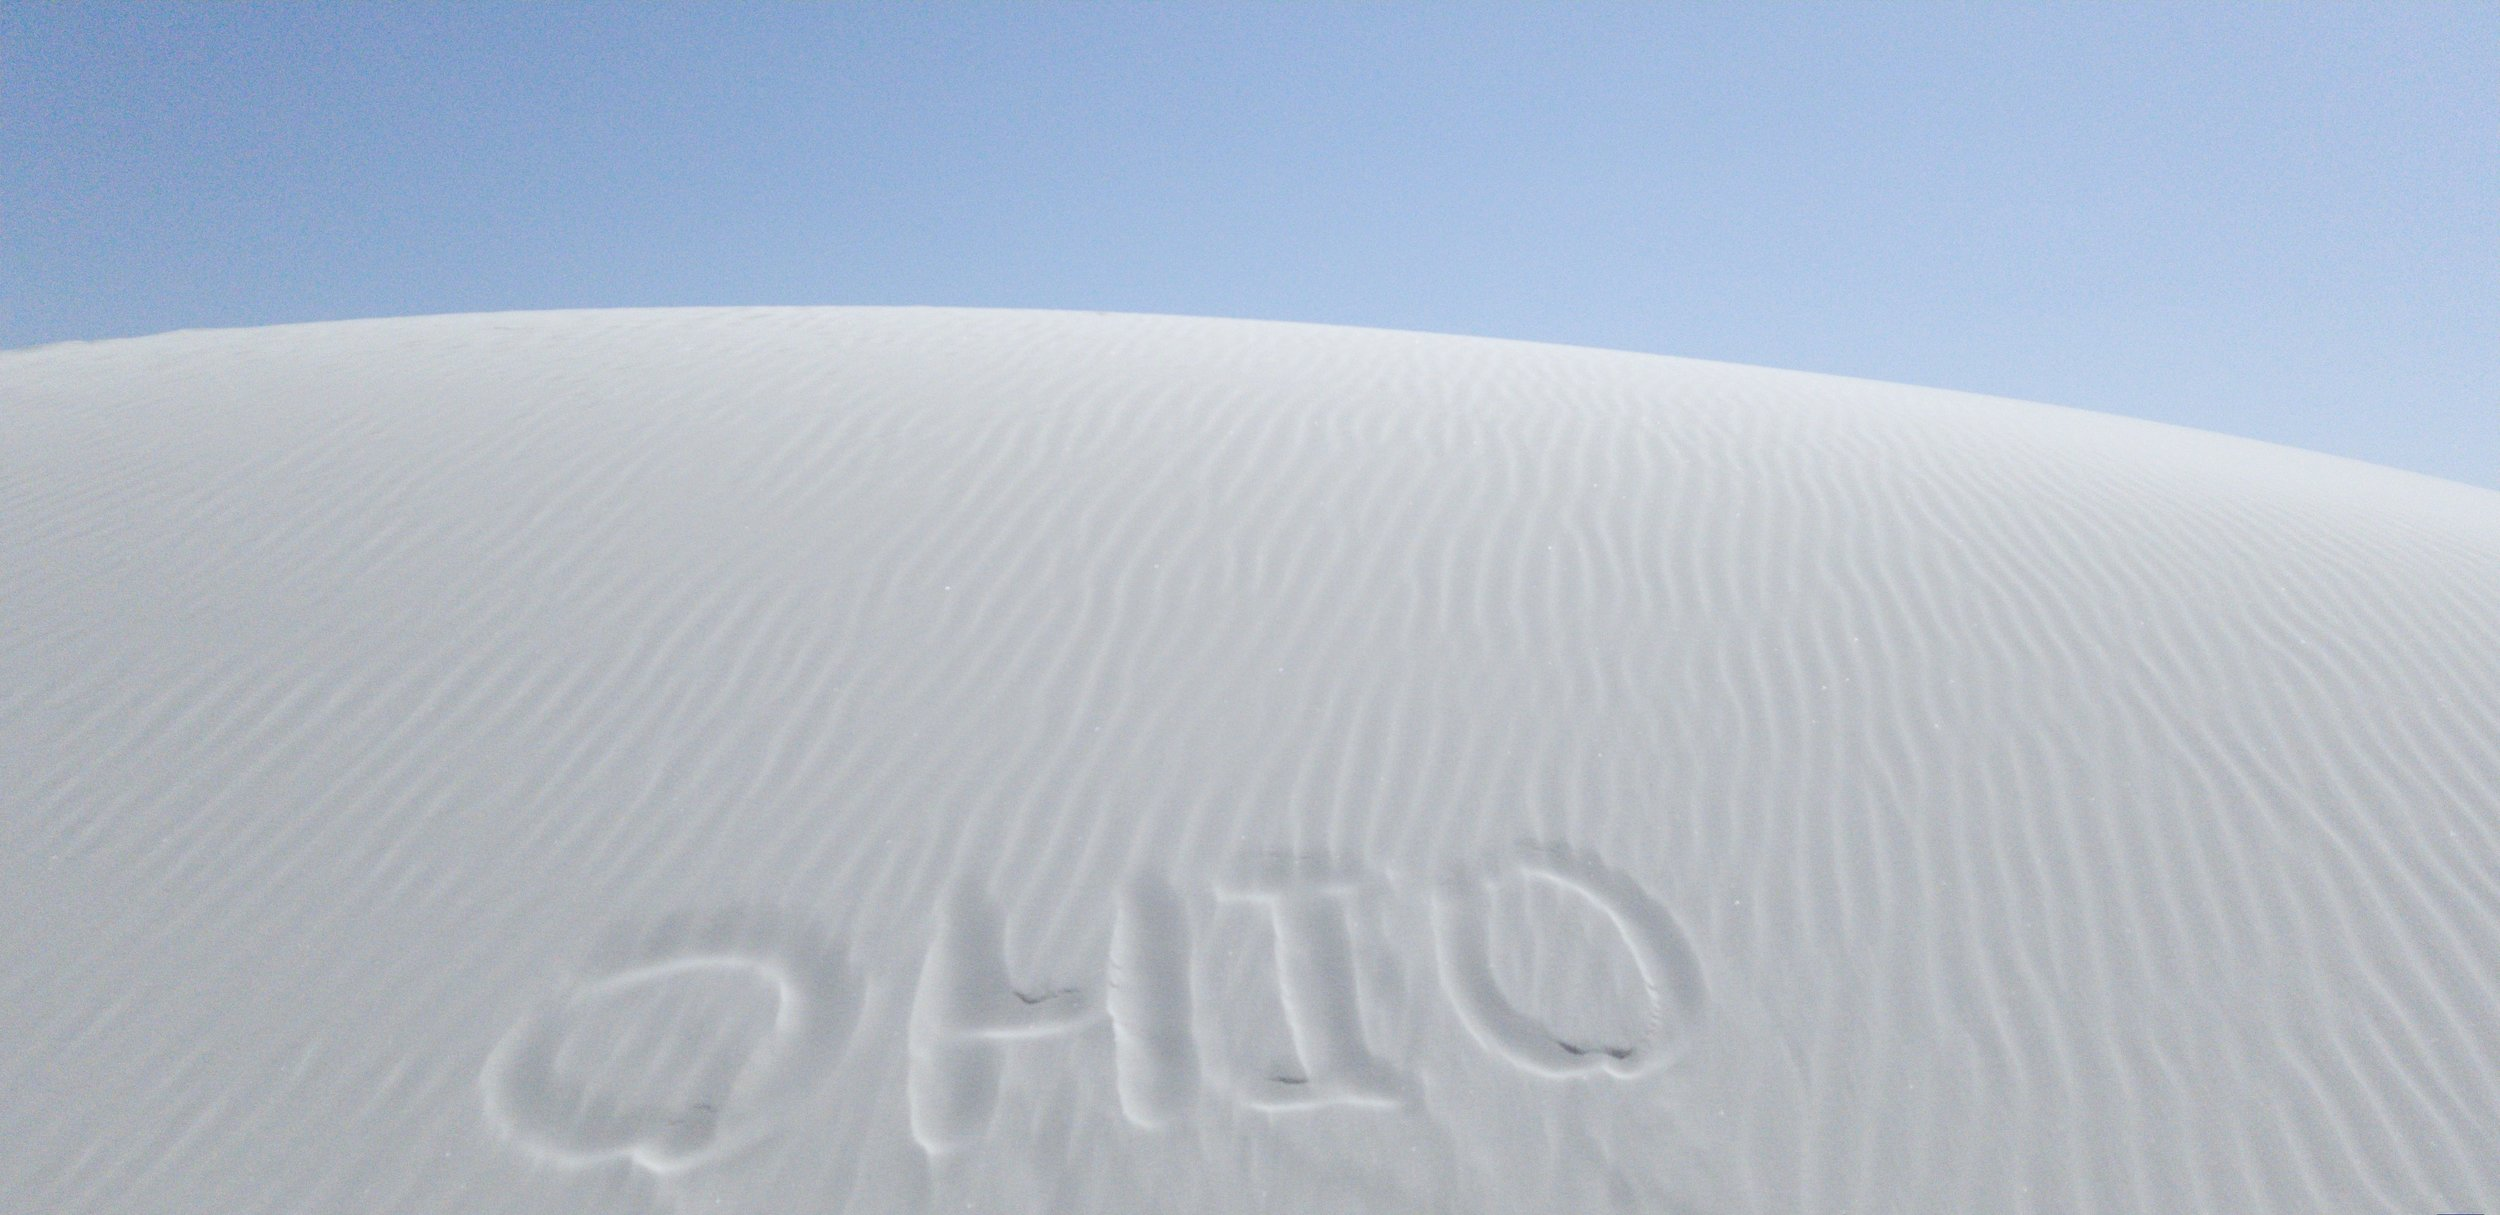 No matter where you go, there you are. White Sands, NM